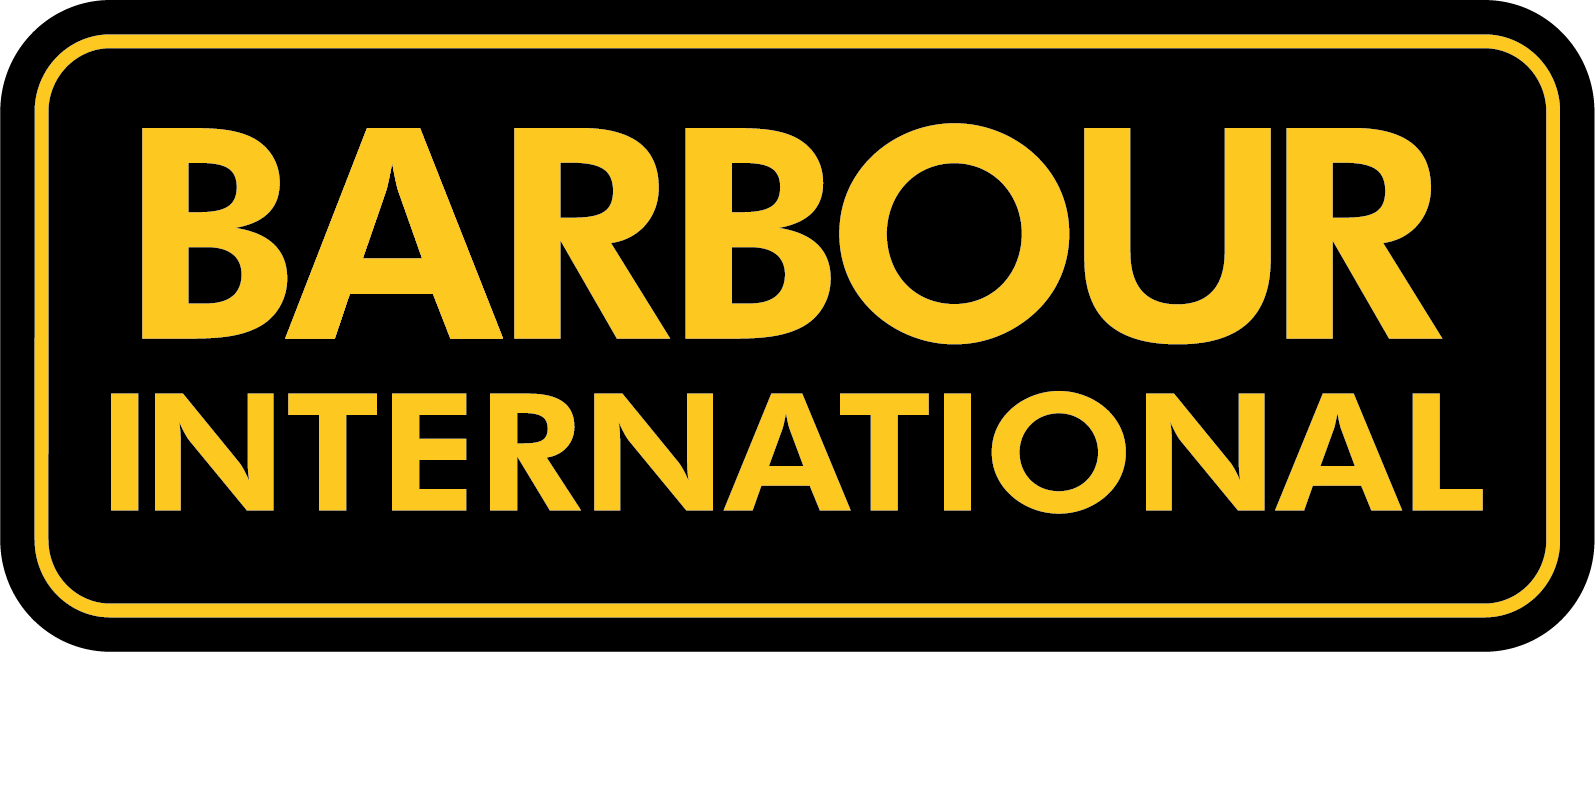 Barbour International, partenaire du Salon Moto Légende